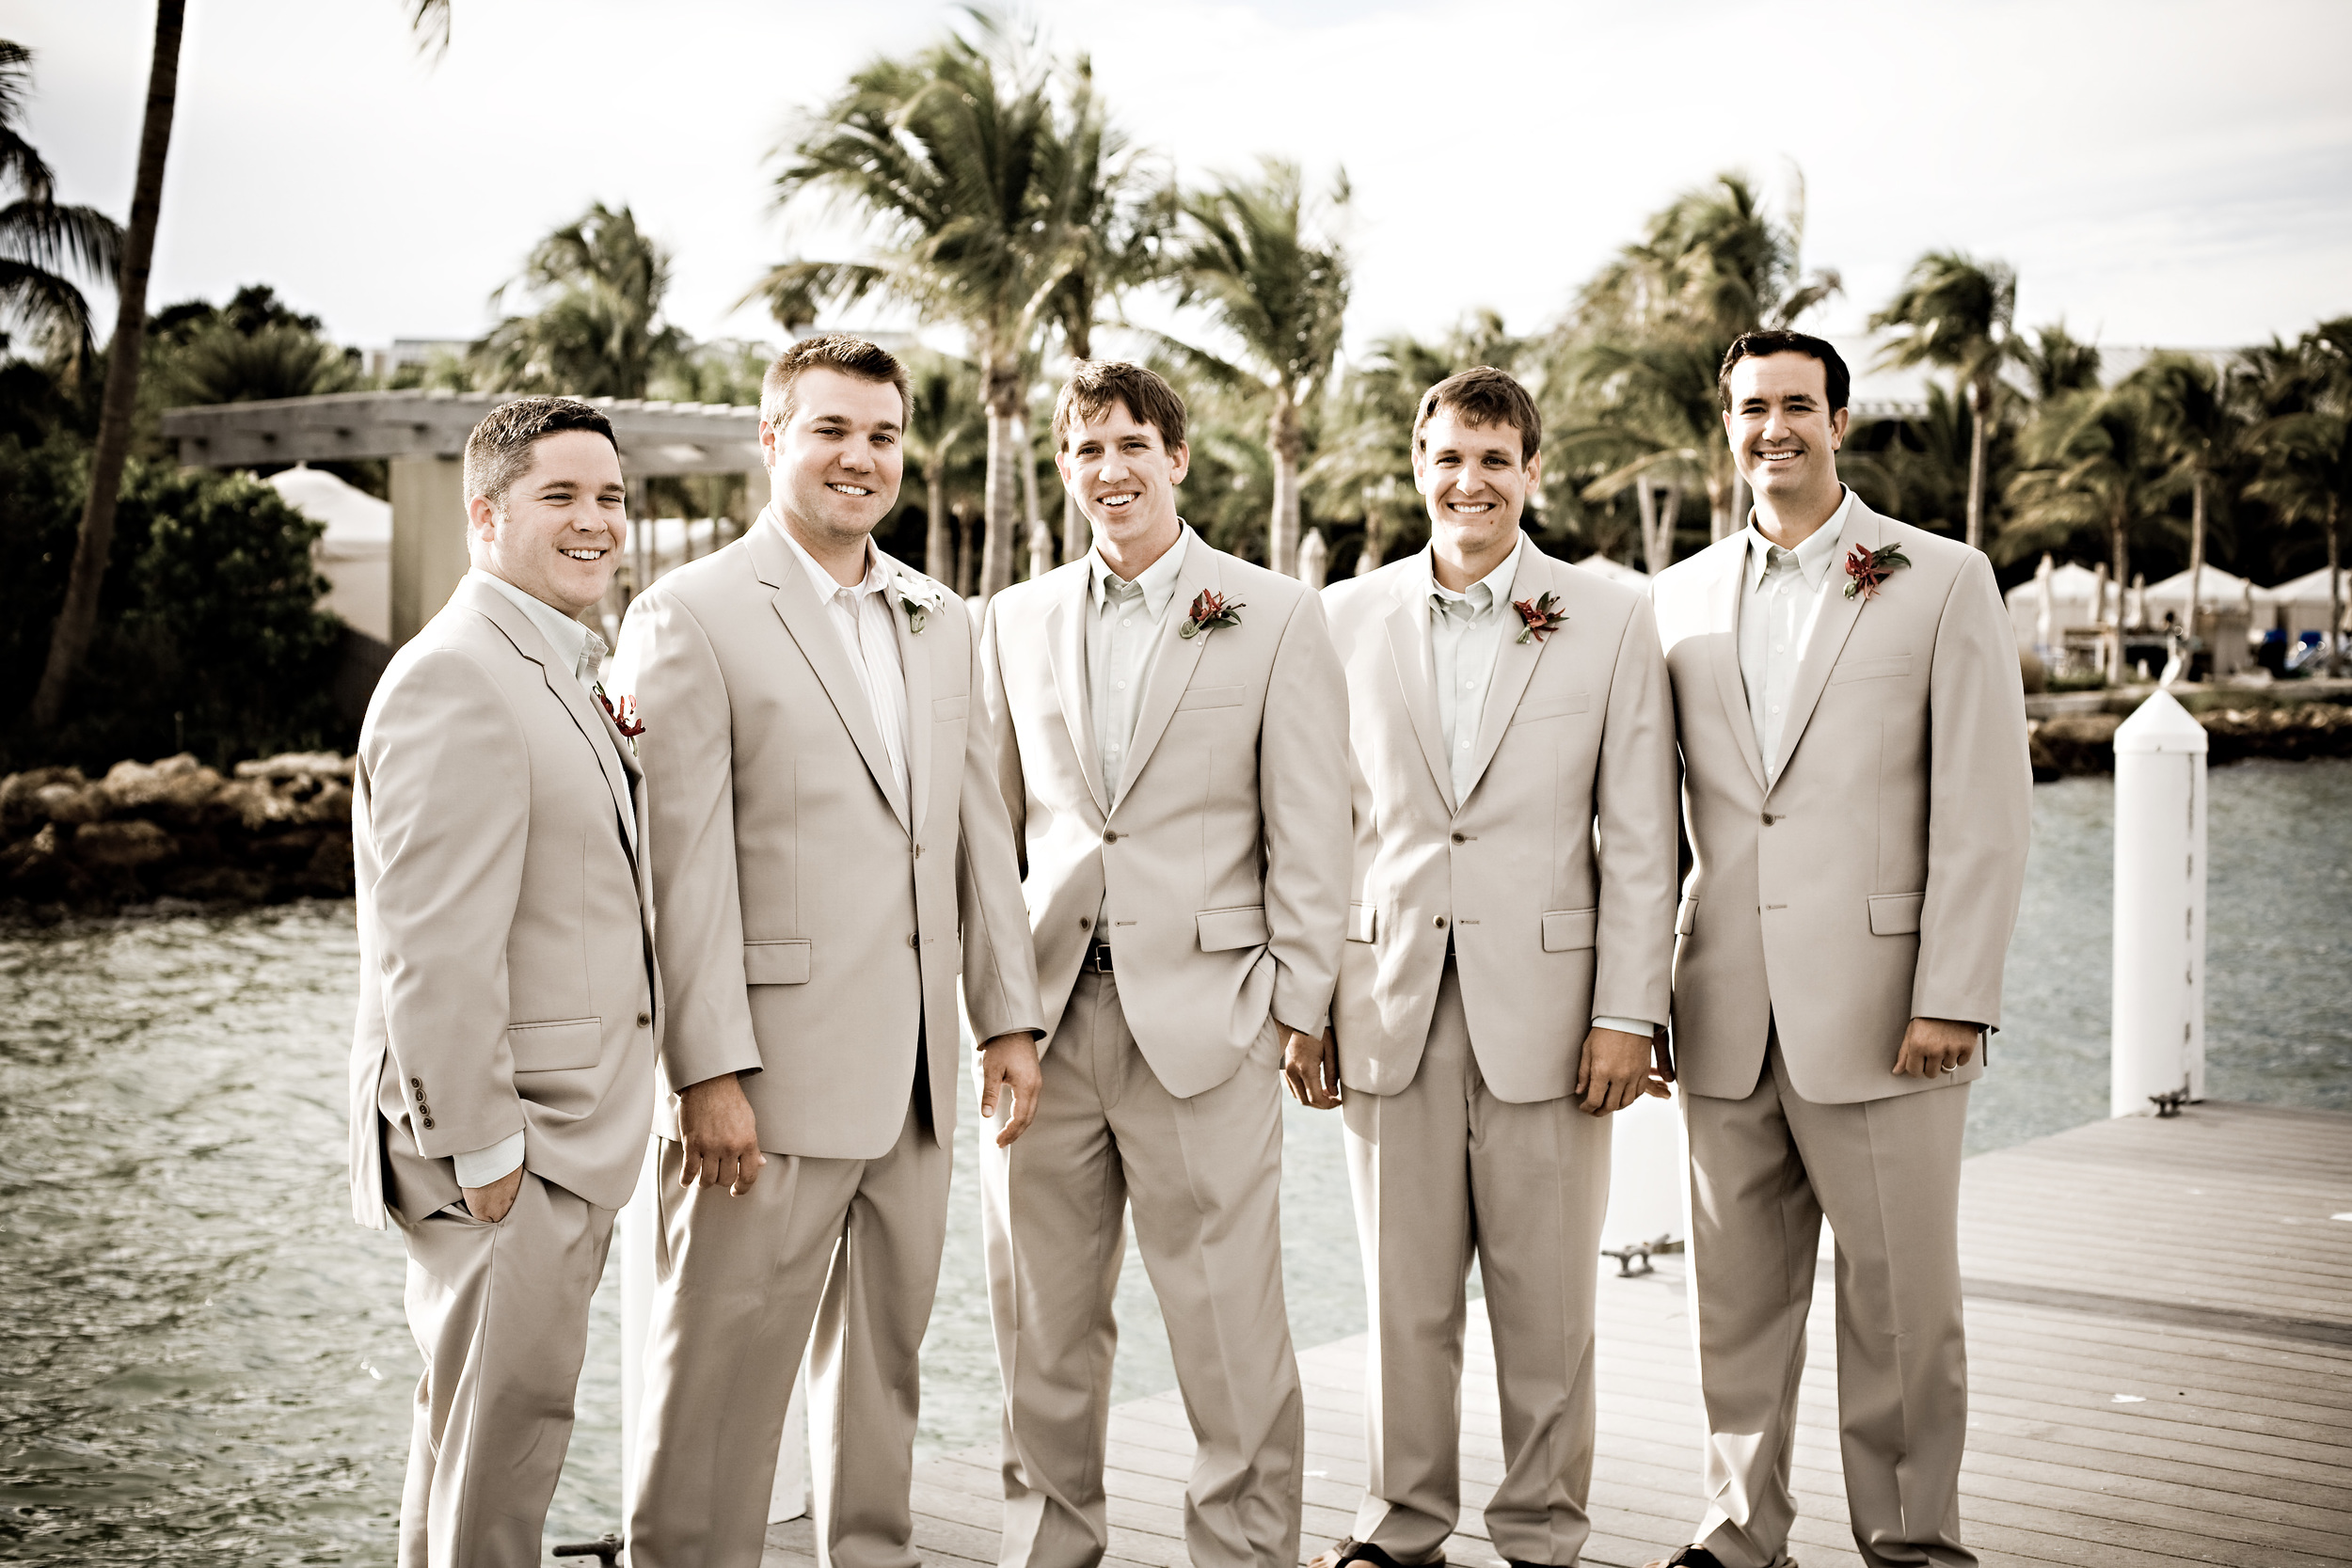 030_orlando_wedding_photographer_brian_adams_photographics.jpg